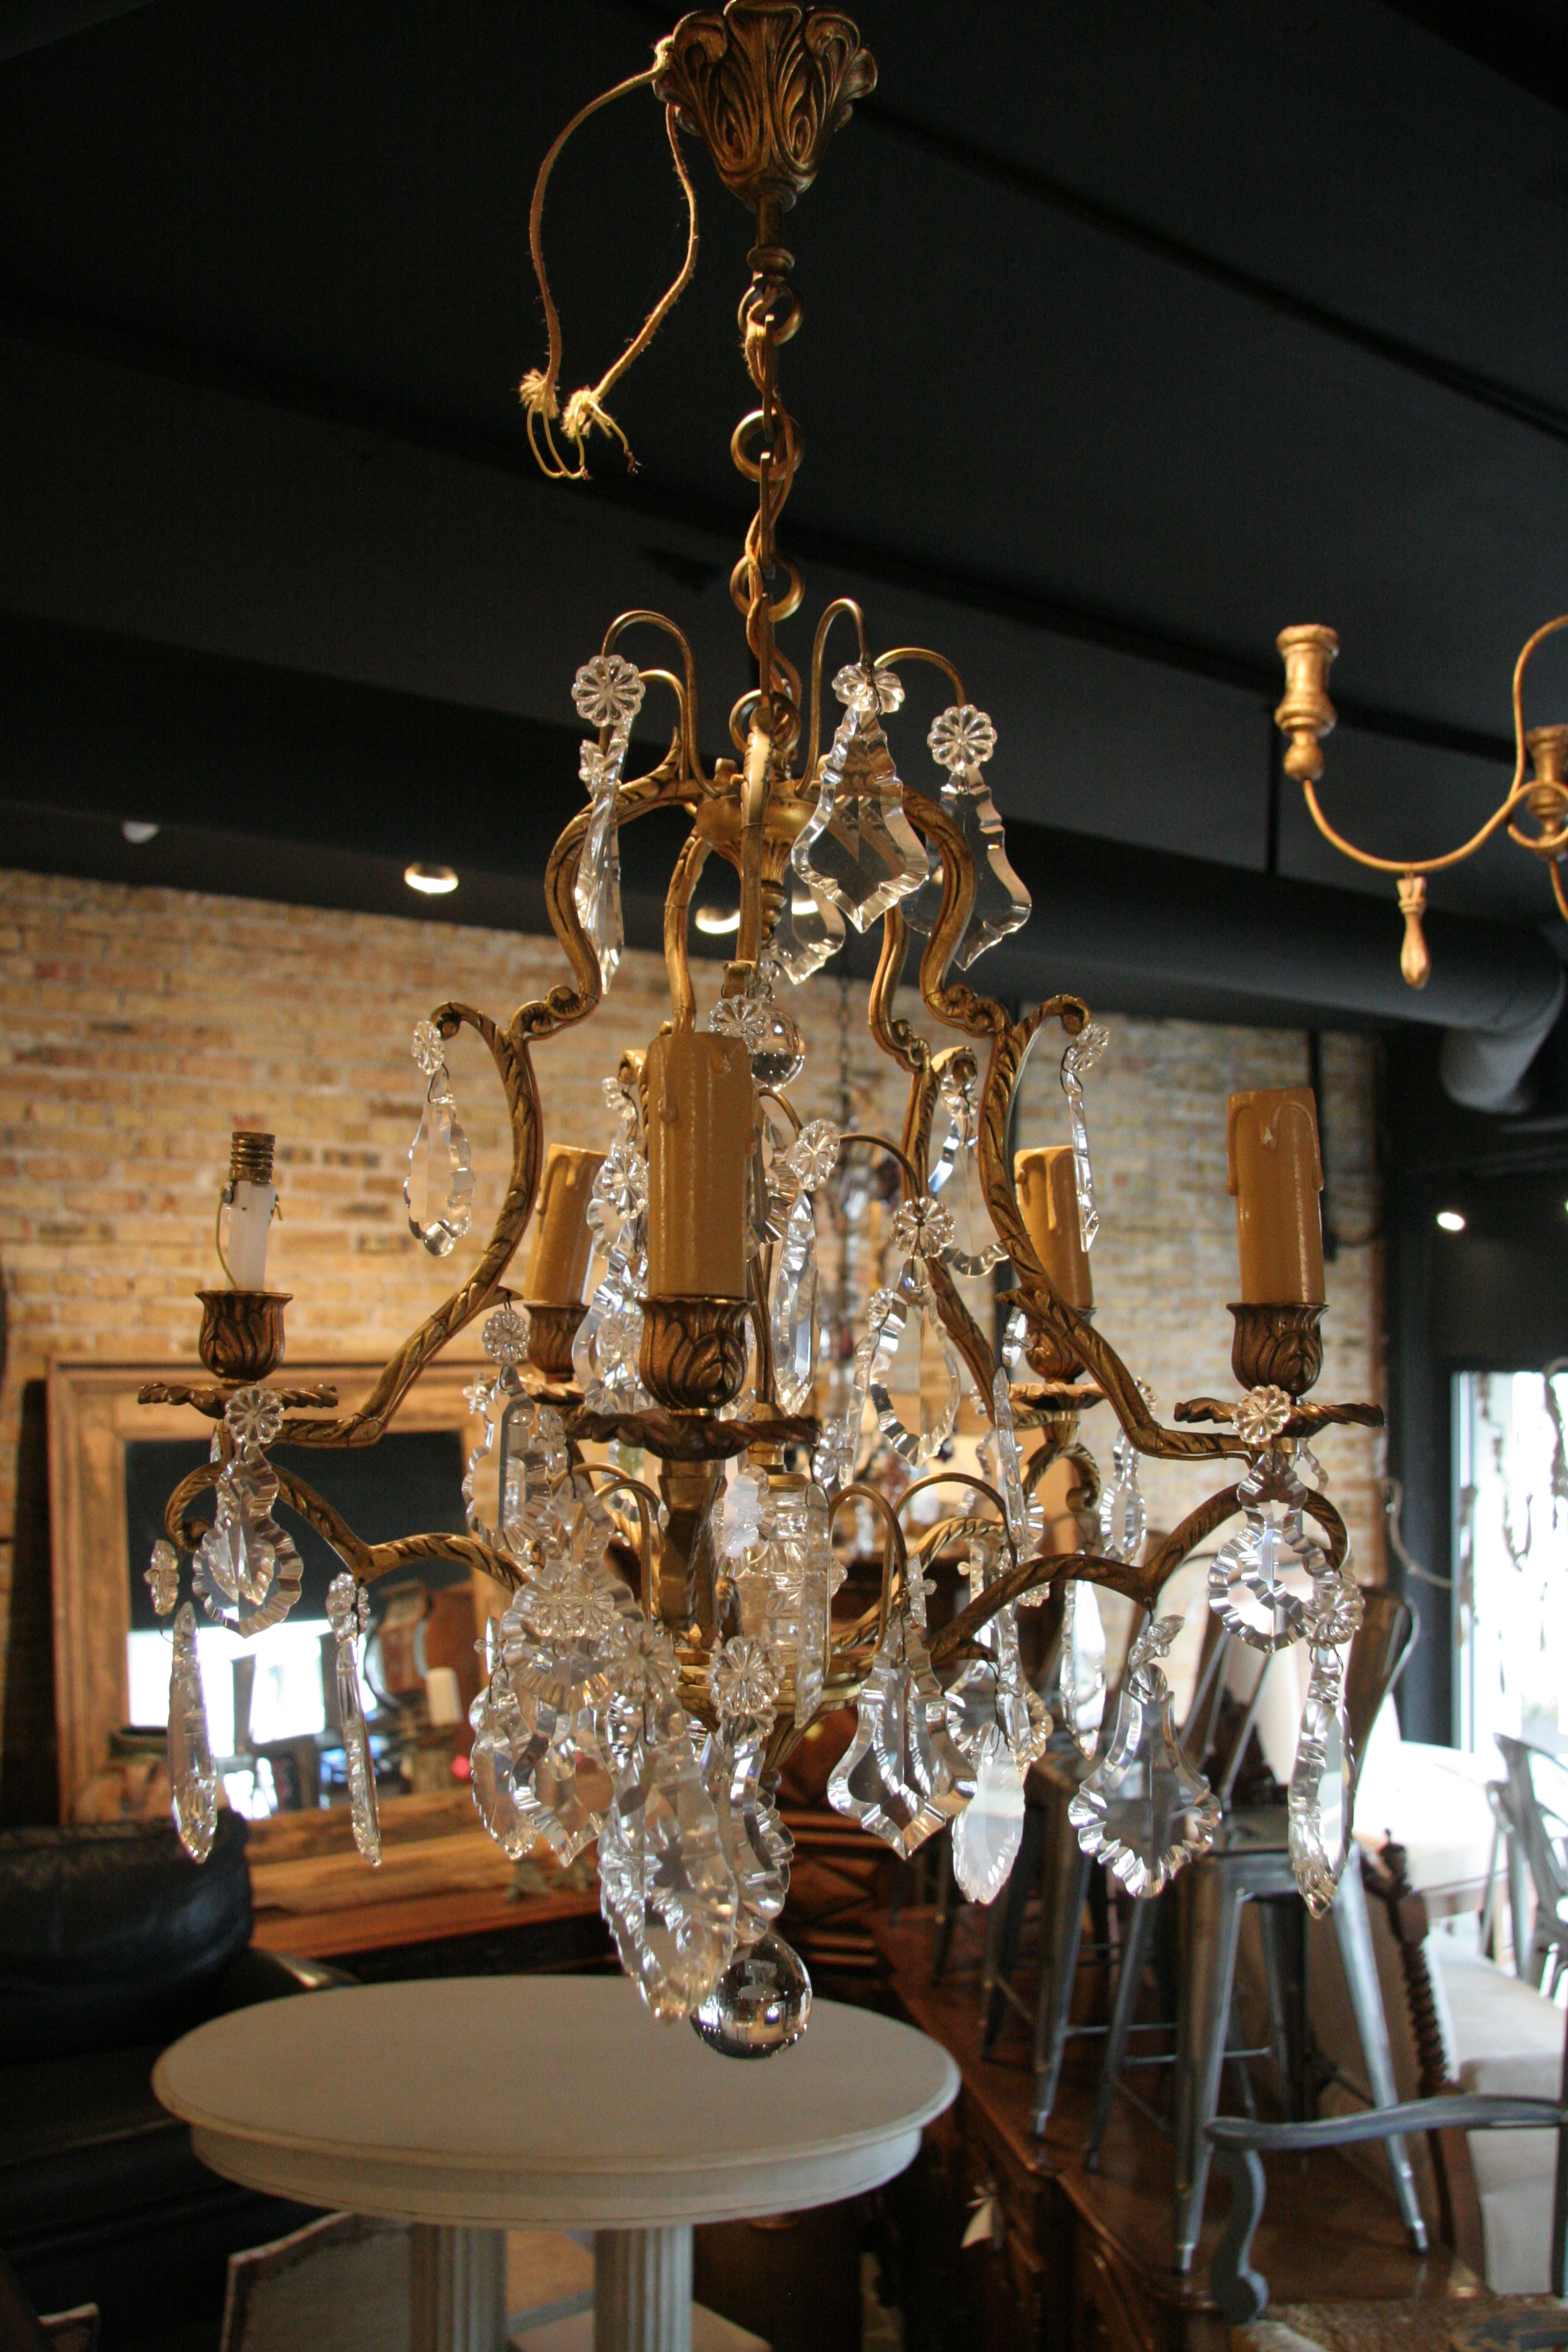 Antique French 5 Light Brass And Crystal Chandelier With Regard To Antique French Chandeliers (Image 2 of 15)